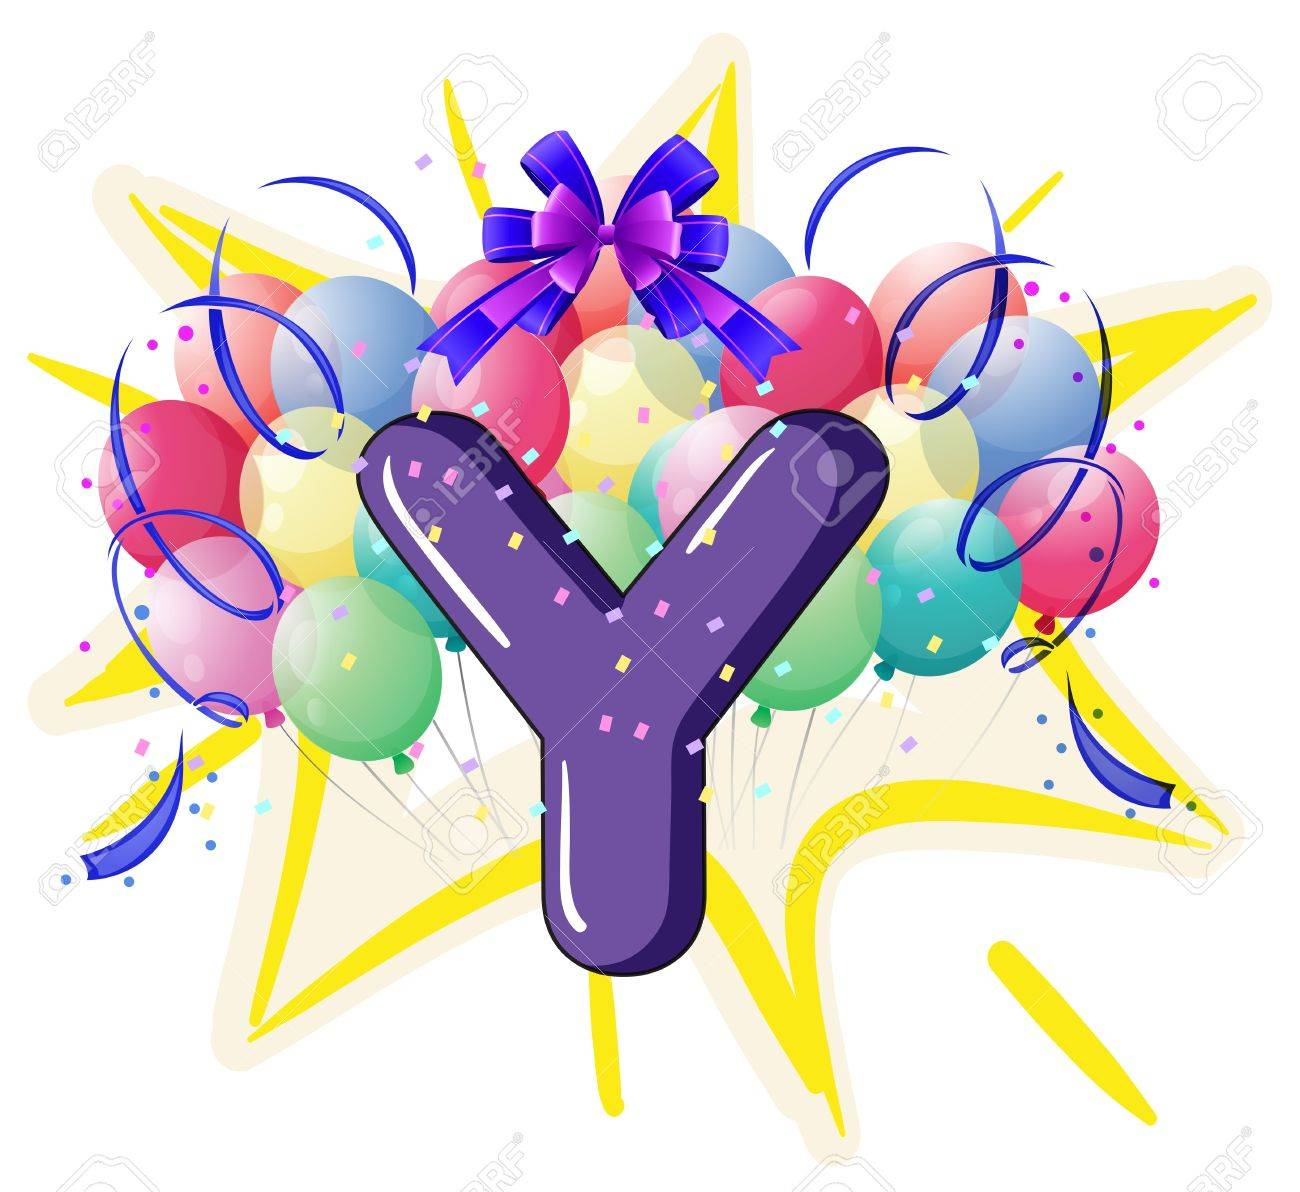 Illustration of balloons and celebration behind letter Stock Vector - 18835889